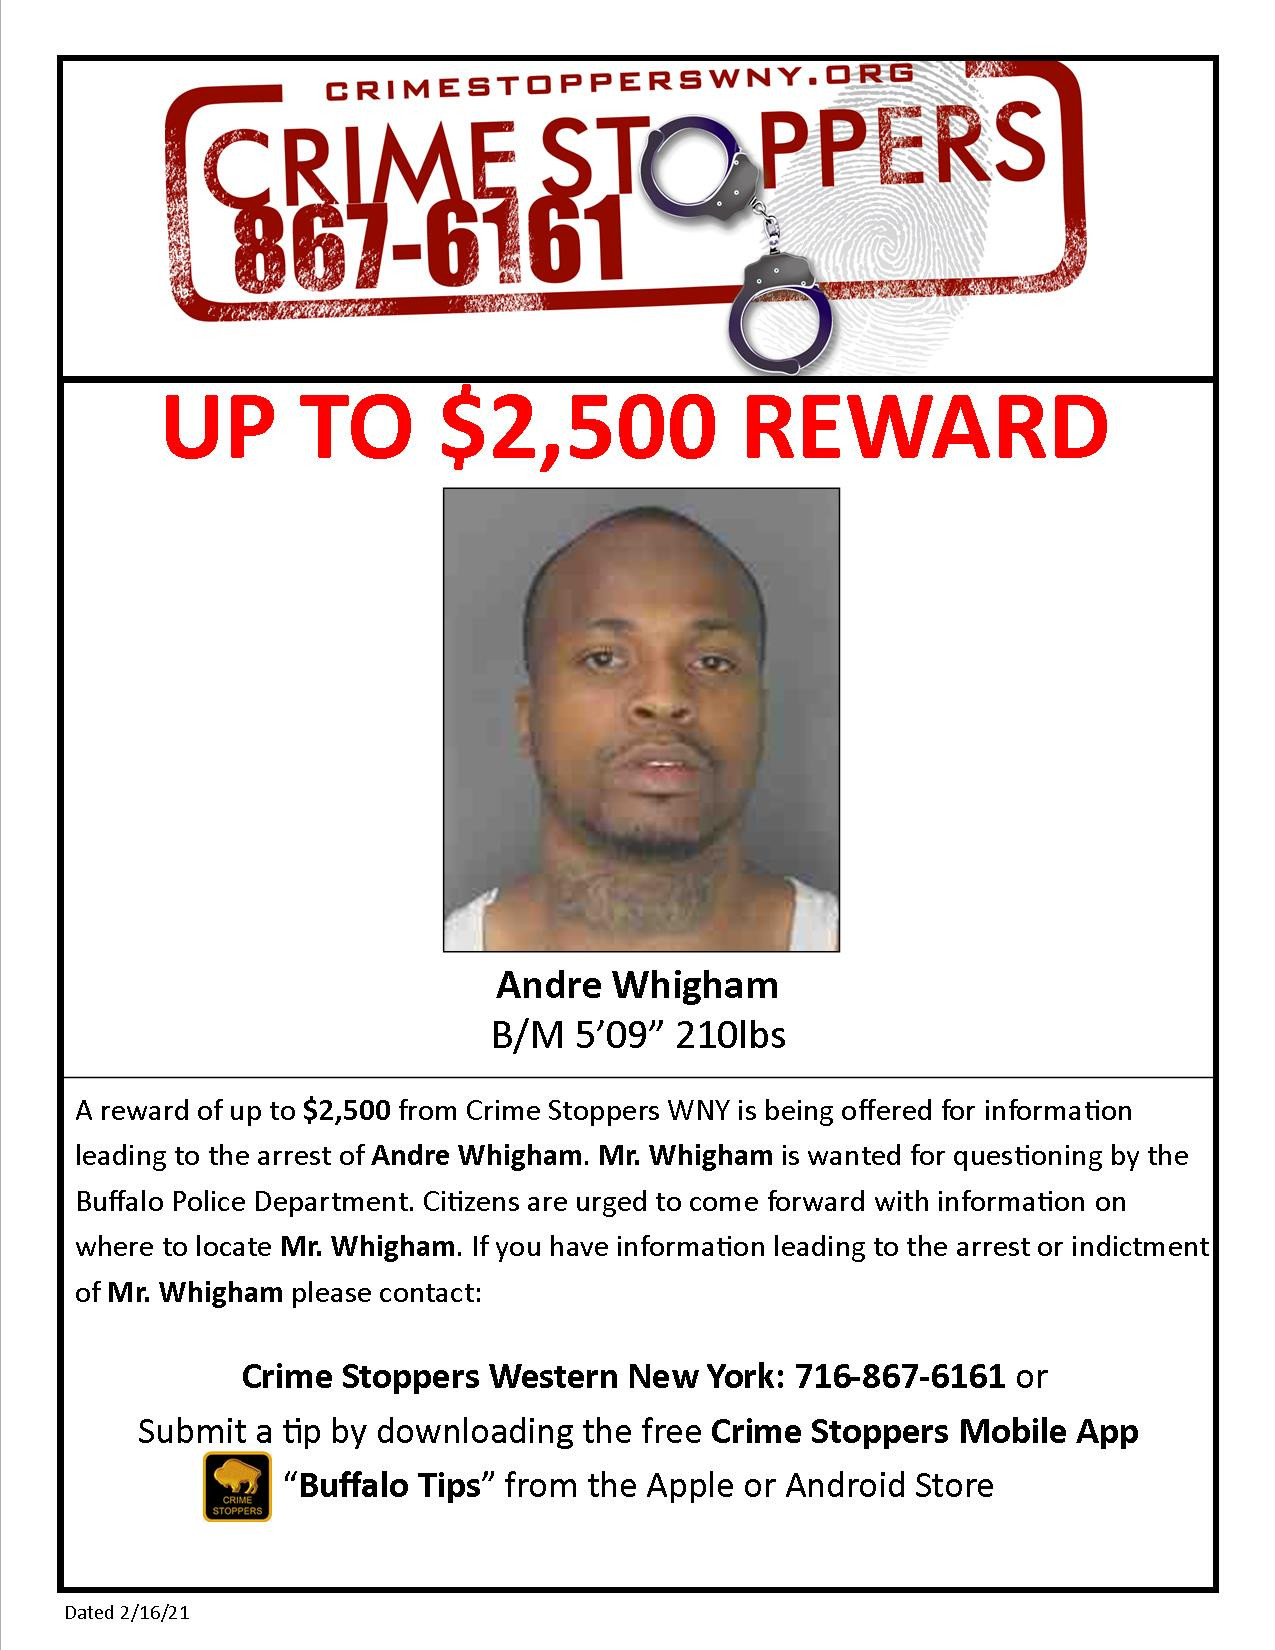 CrimeStoppers_AndreWhigham_2.16.21